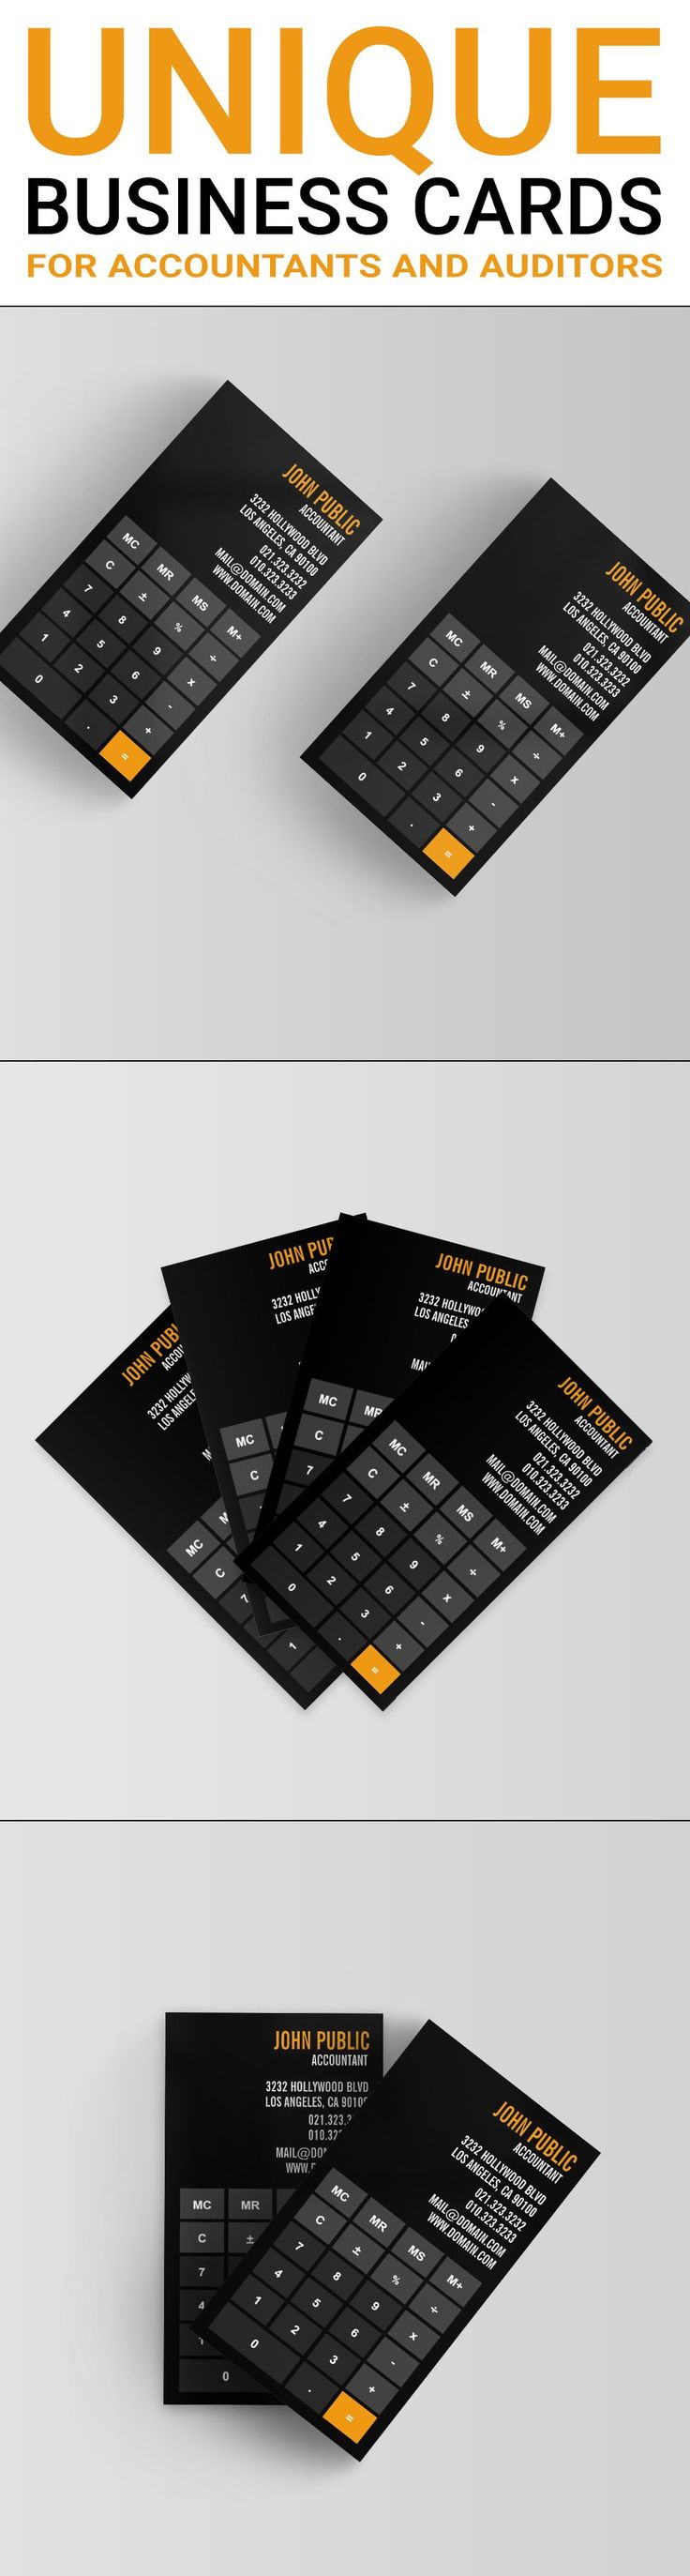 A unique and modern business card template designed to look like a modern app calculator. This business card design is ideal for accountants, certified public accountants, bookkeepers or financial advisers. It will also work for math tutors.